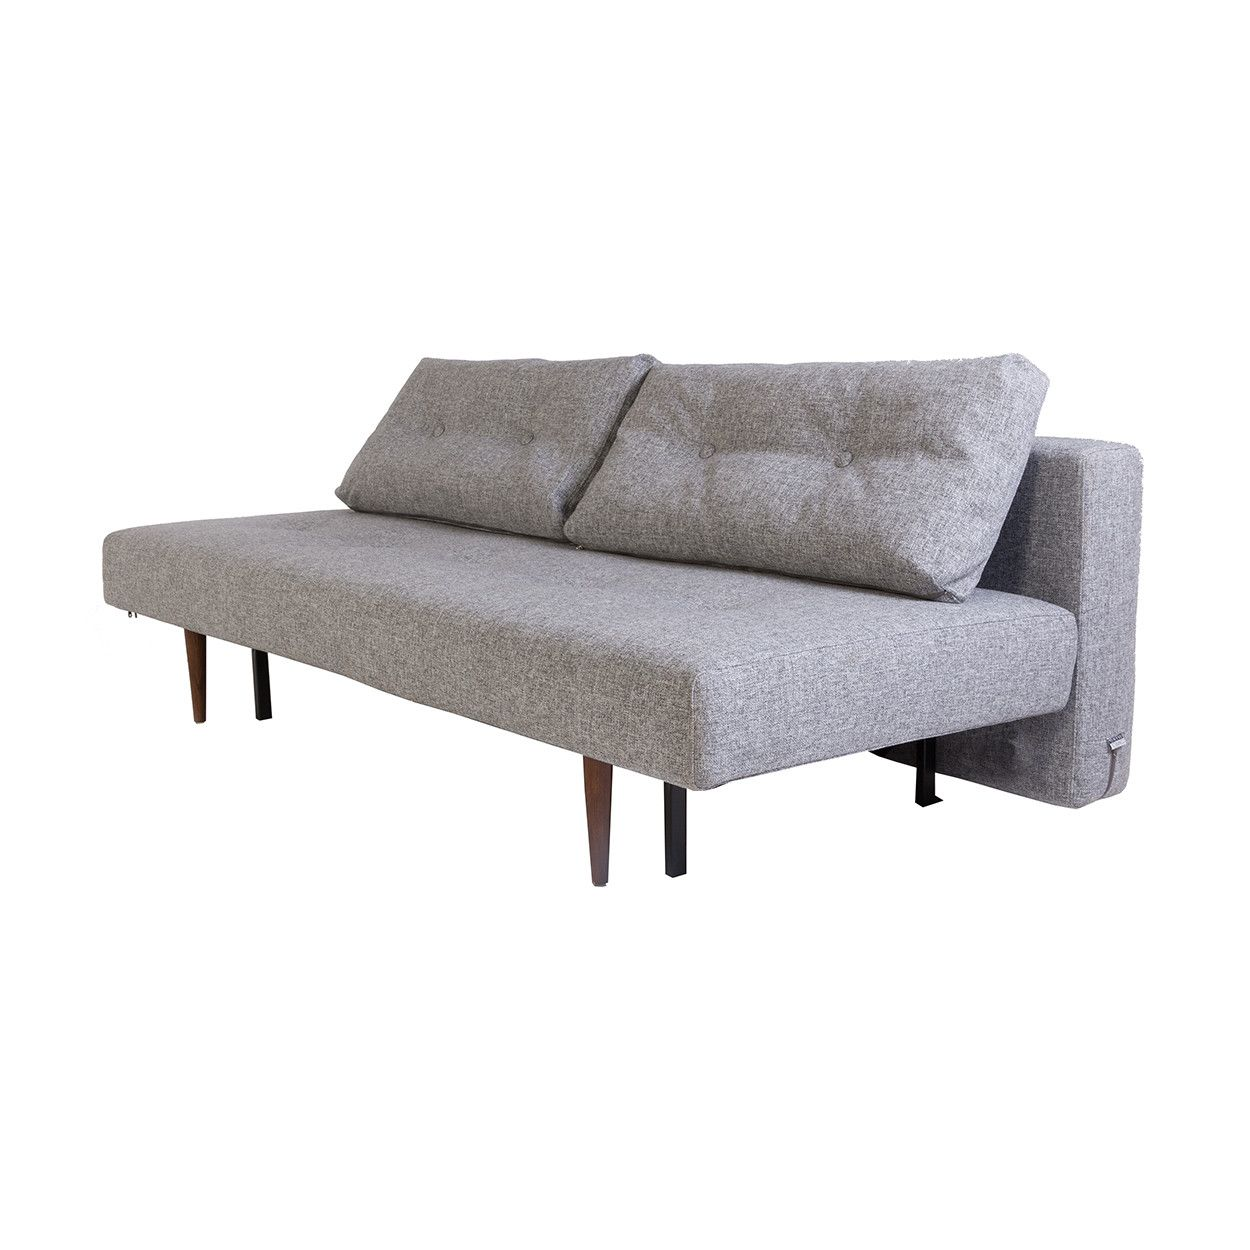 Innovative Rewind Sleeper Sofa Grey Modern Sleeper Sofa